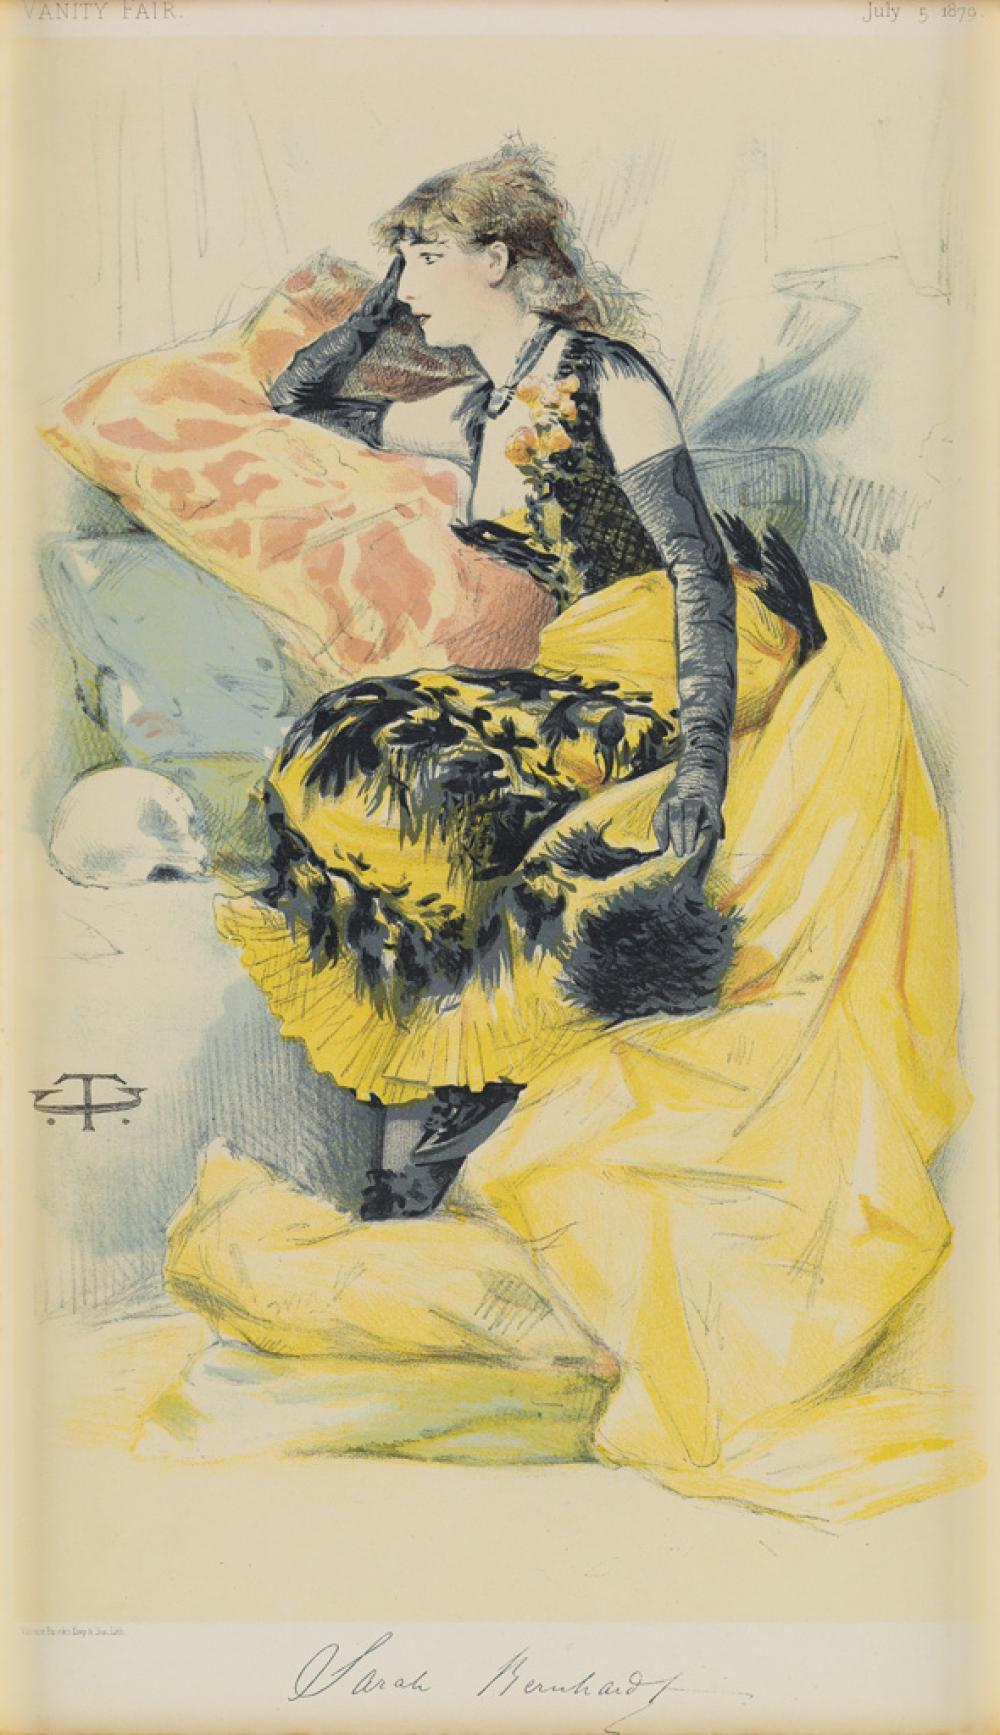 C.T. (INITIALS UNKNOWN). SARAH BERNHARDT / VANITY FAIR. 1879. 13x7 inches, 33x19 cm. Vincent Brooks Day & Son, Lith., [London.]